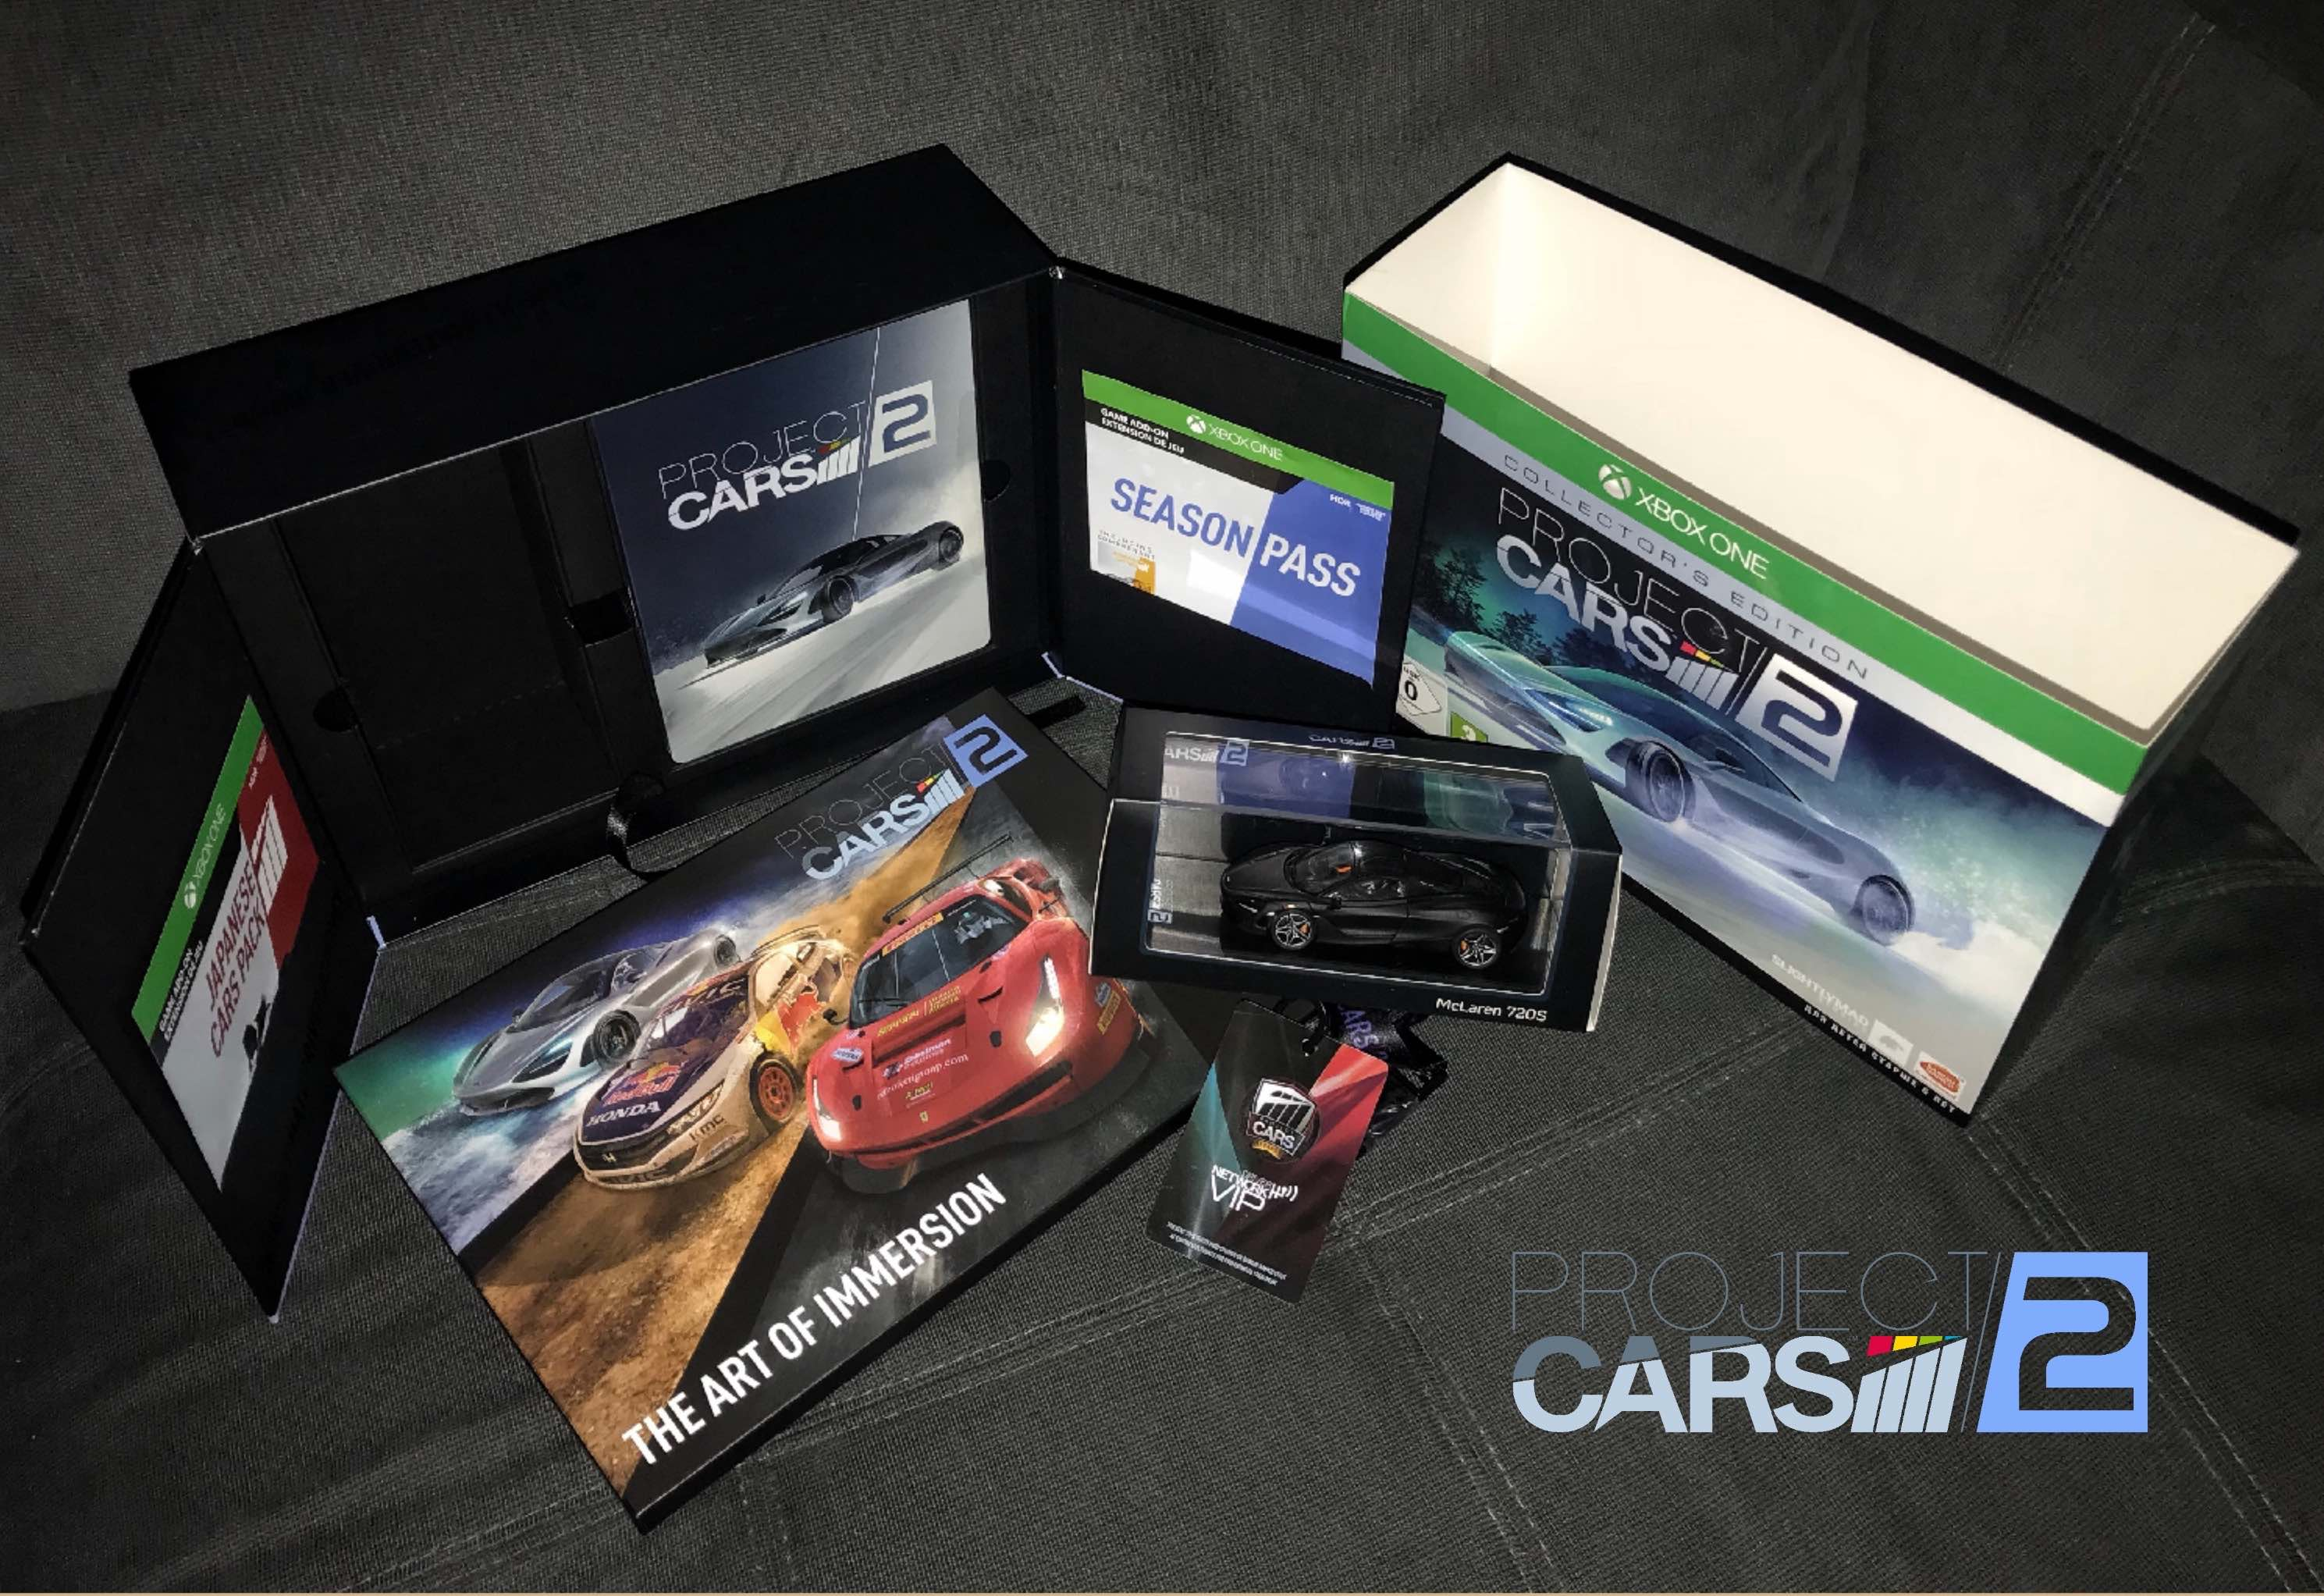 Stand a chance of winning this awesome Project CARS 2 Collectors Edition